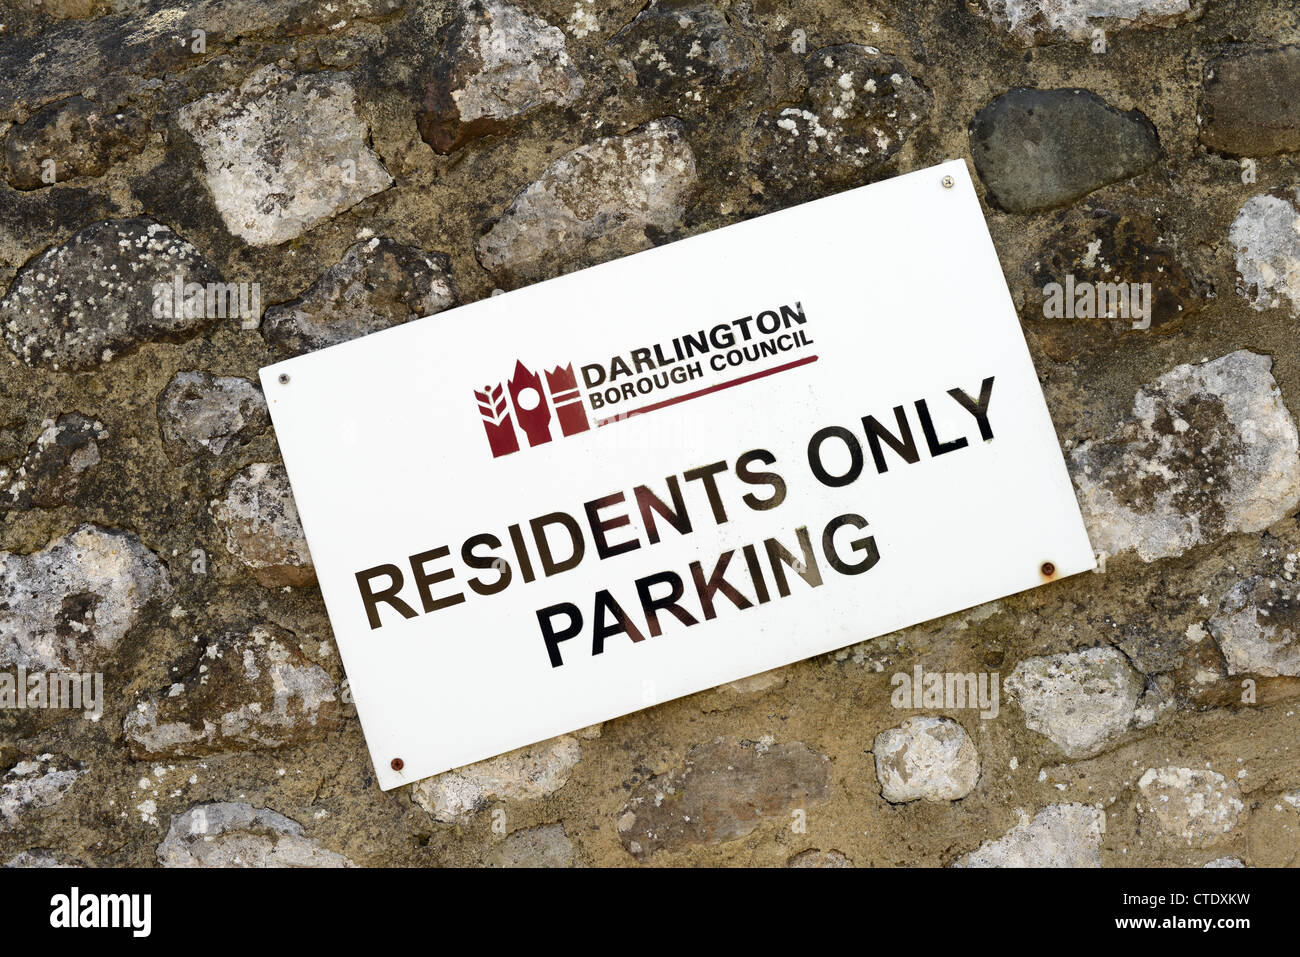 Residents only parking sign in borough of Darlington, County Durham - Stock Image